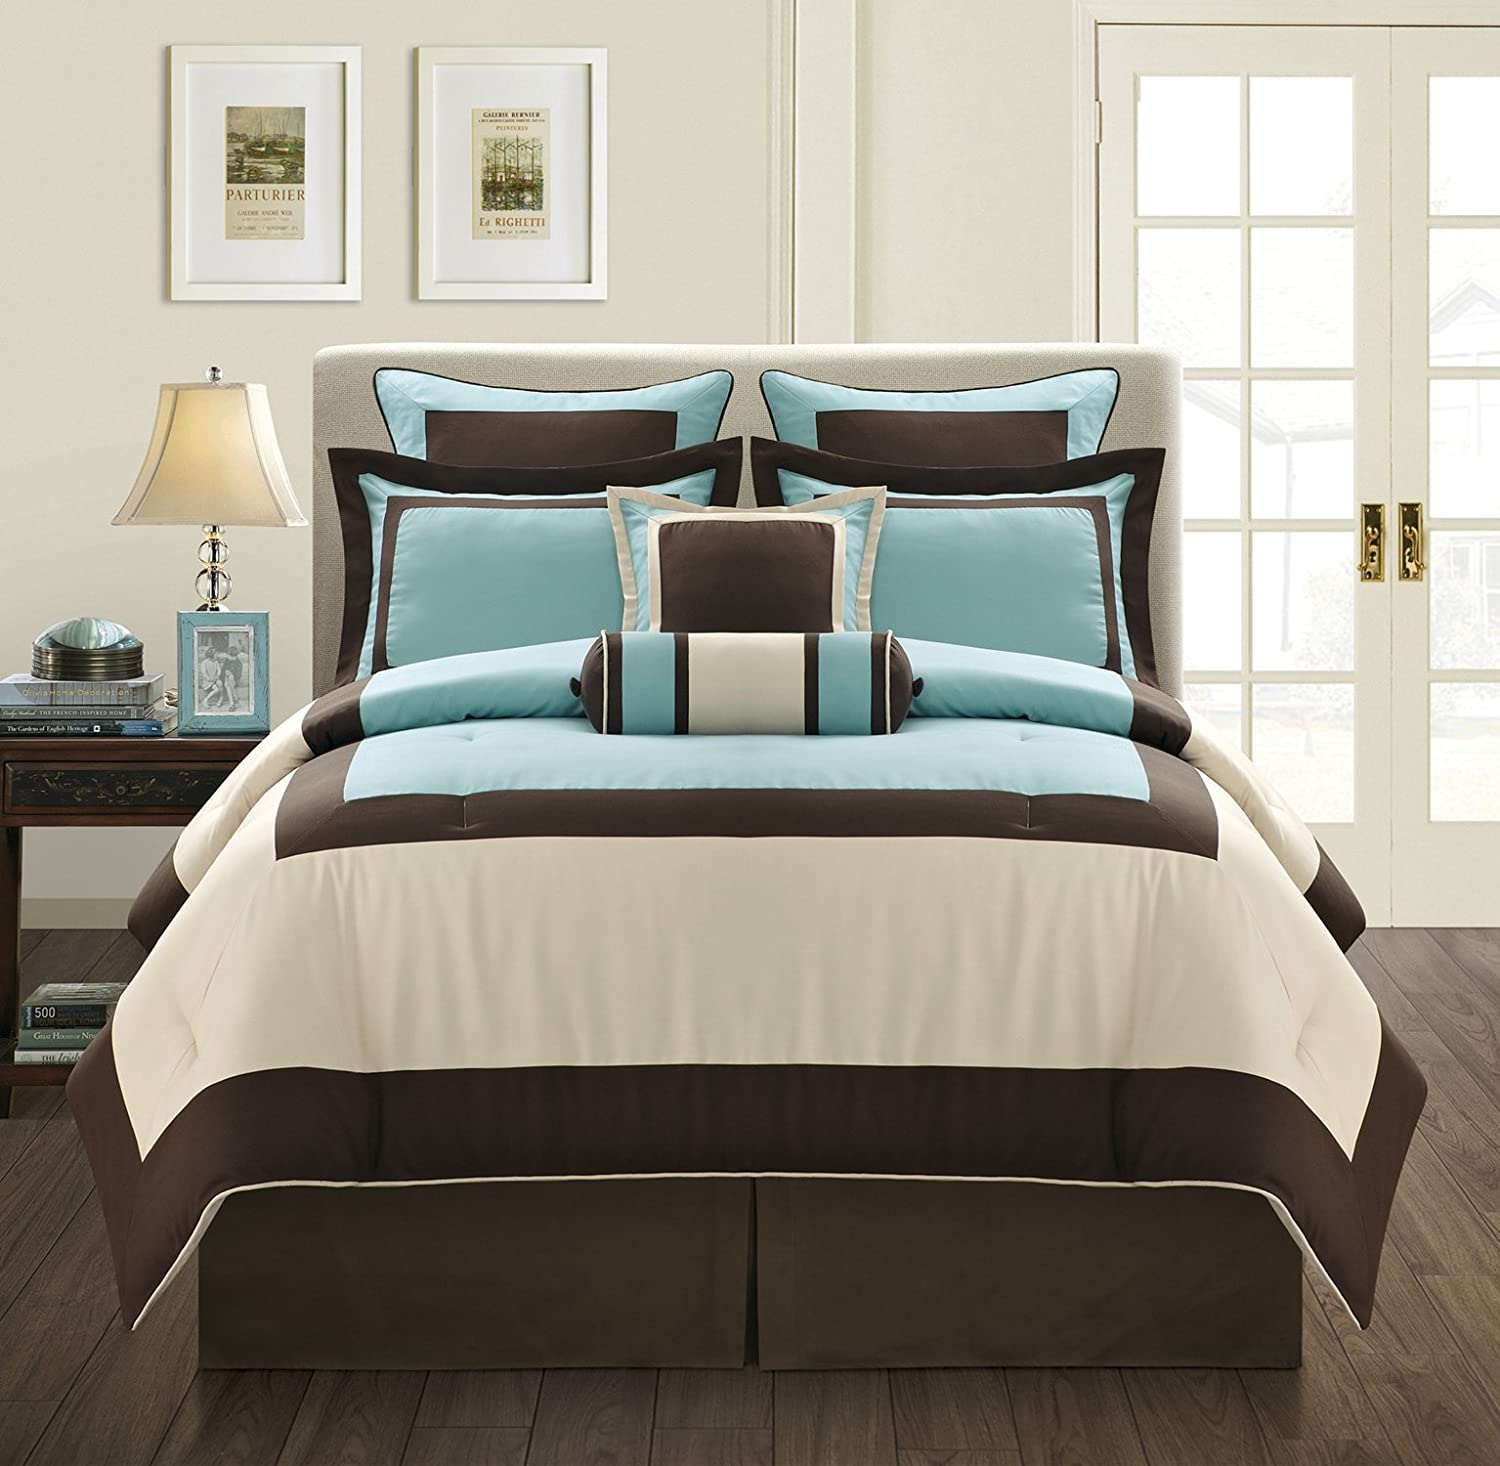 Fashion Street Gramercy 8-Piece Comforter Set, Queen, Aqua/Brown